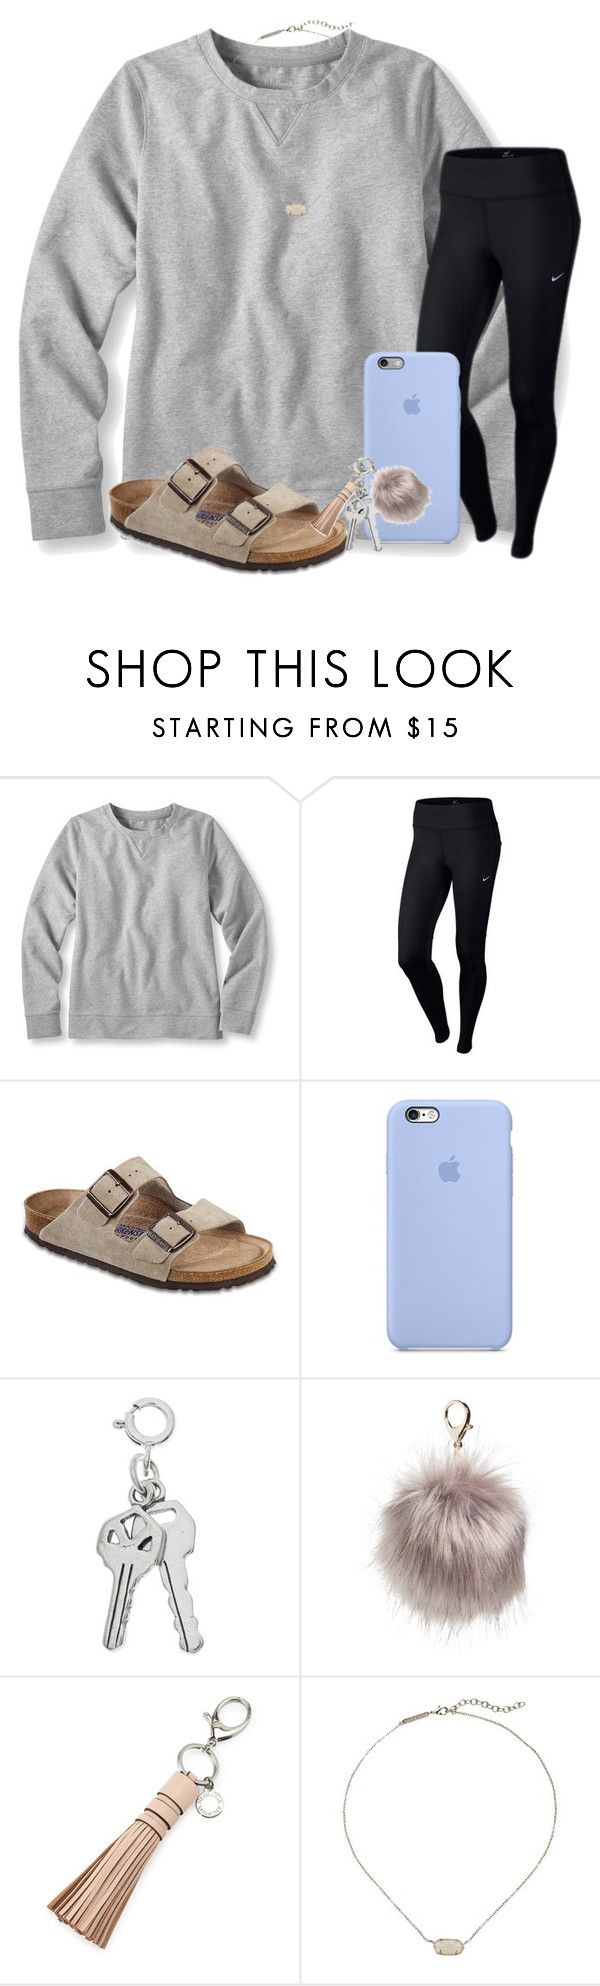 """Staying up for Mercy!!!!!!"" by kari-luvs-u-2 ❤ liked on Polyvore featuring L.L.Bean, NIKE, Birkenstock, Nila Anthony, Rebecca Minkoff and Kendra Scott"